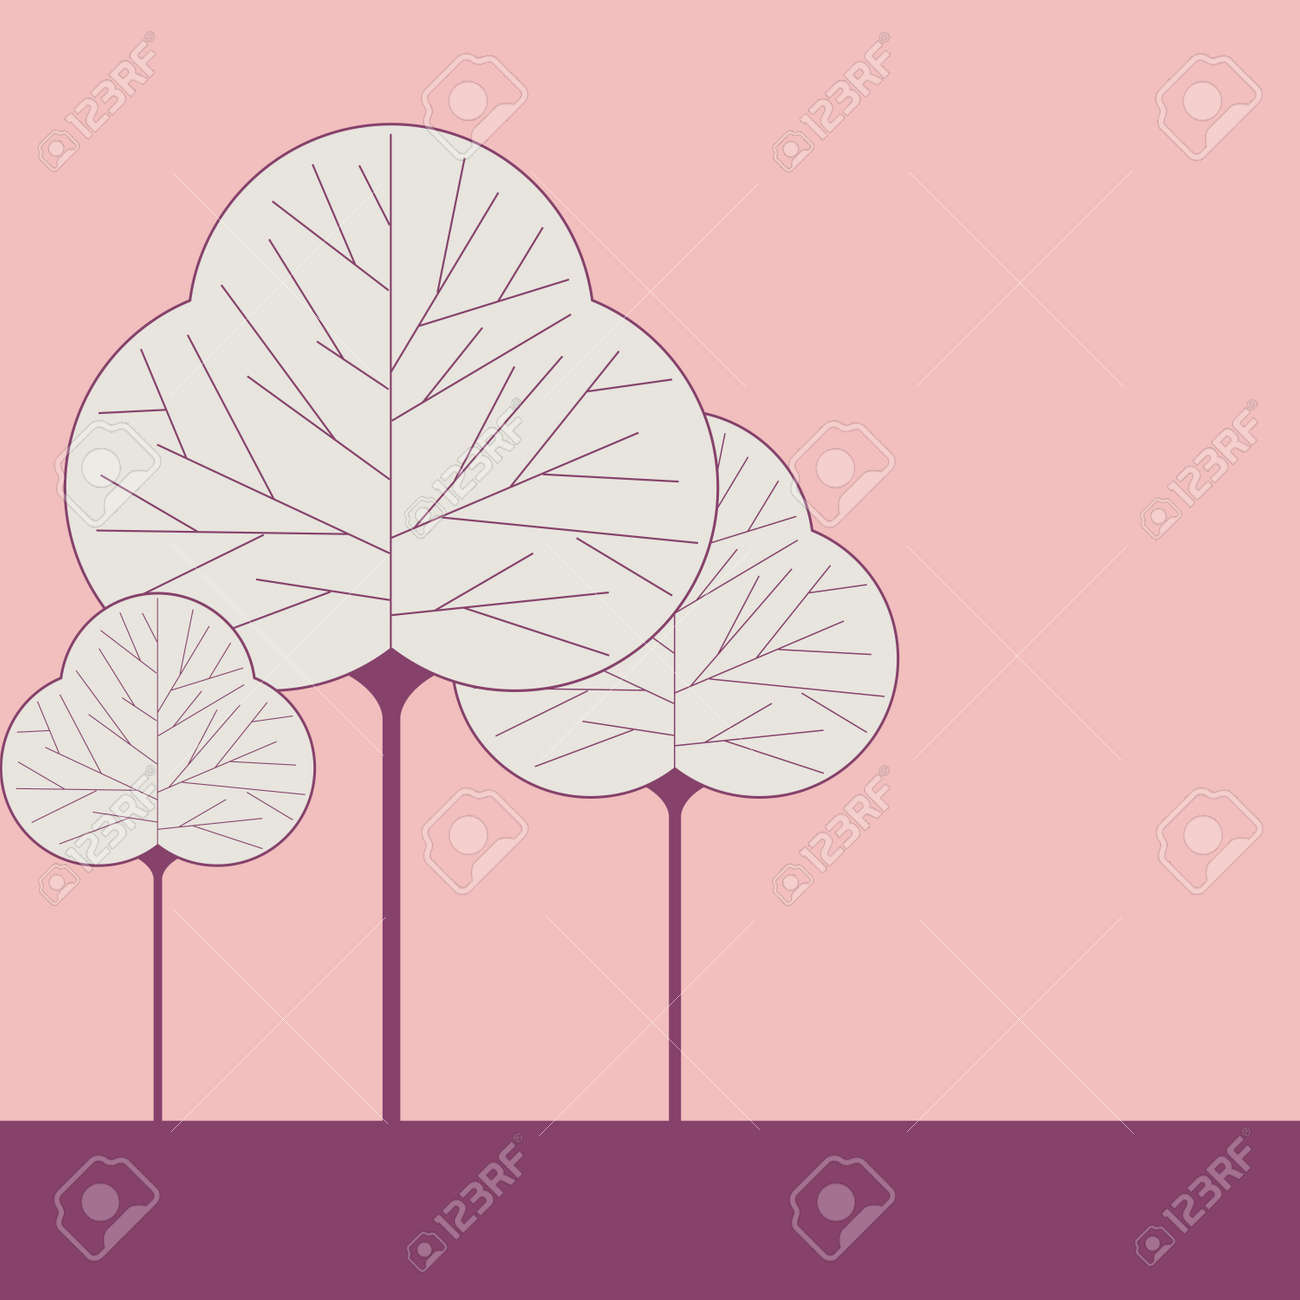 Three leaf shaped tree illustrations on a solid color background Stock Vector - 15050087